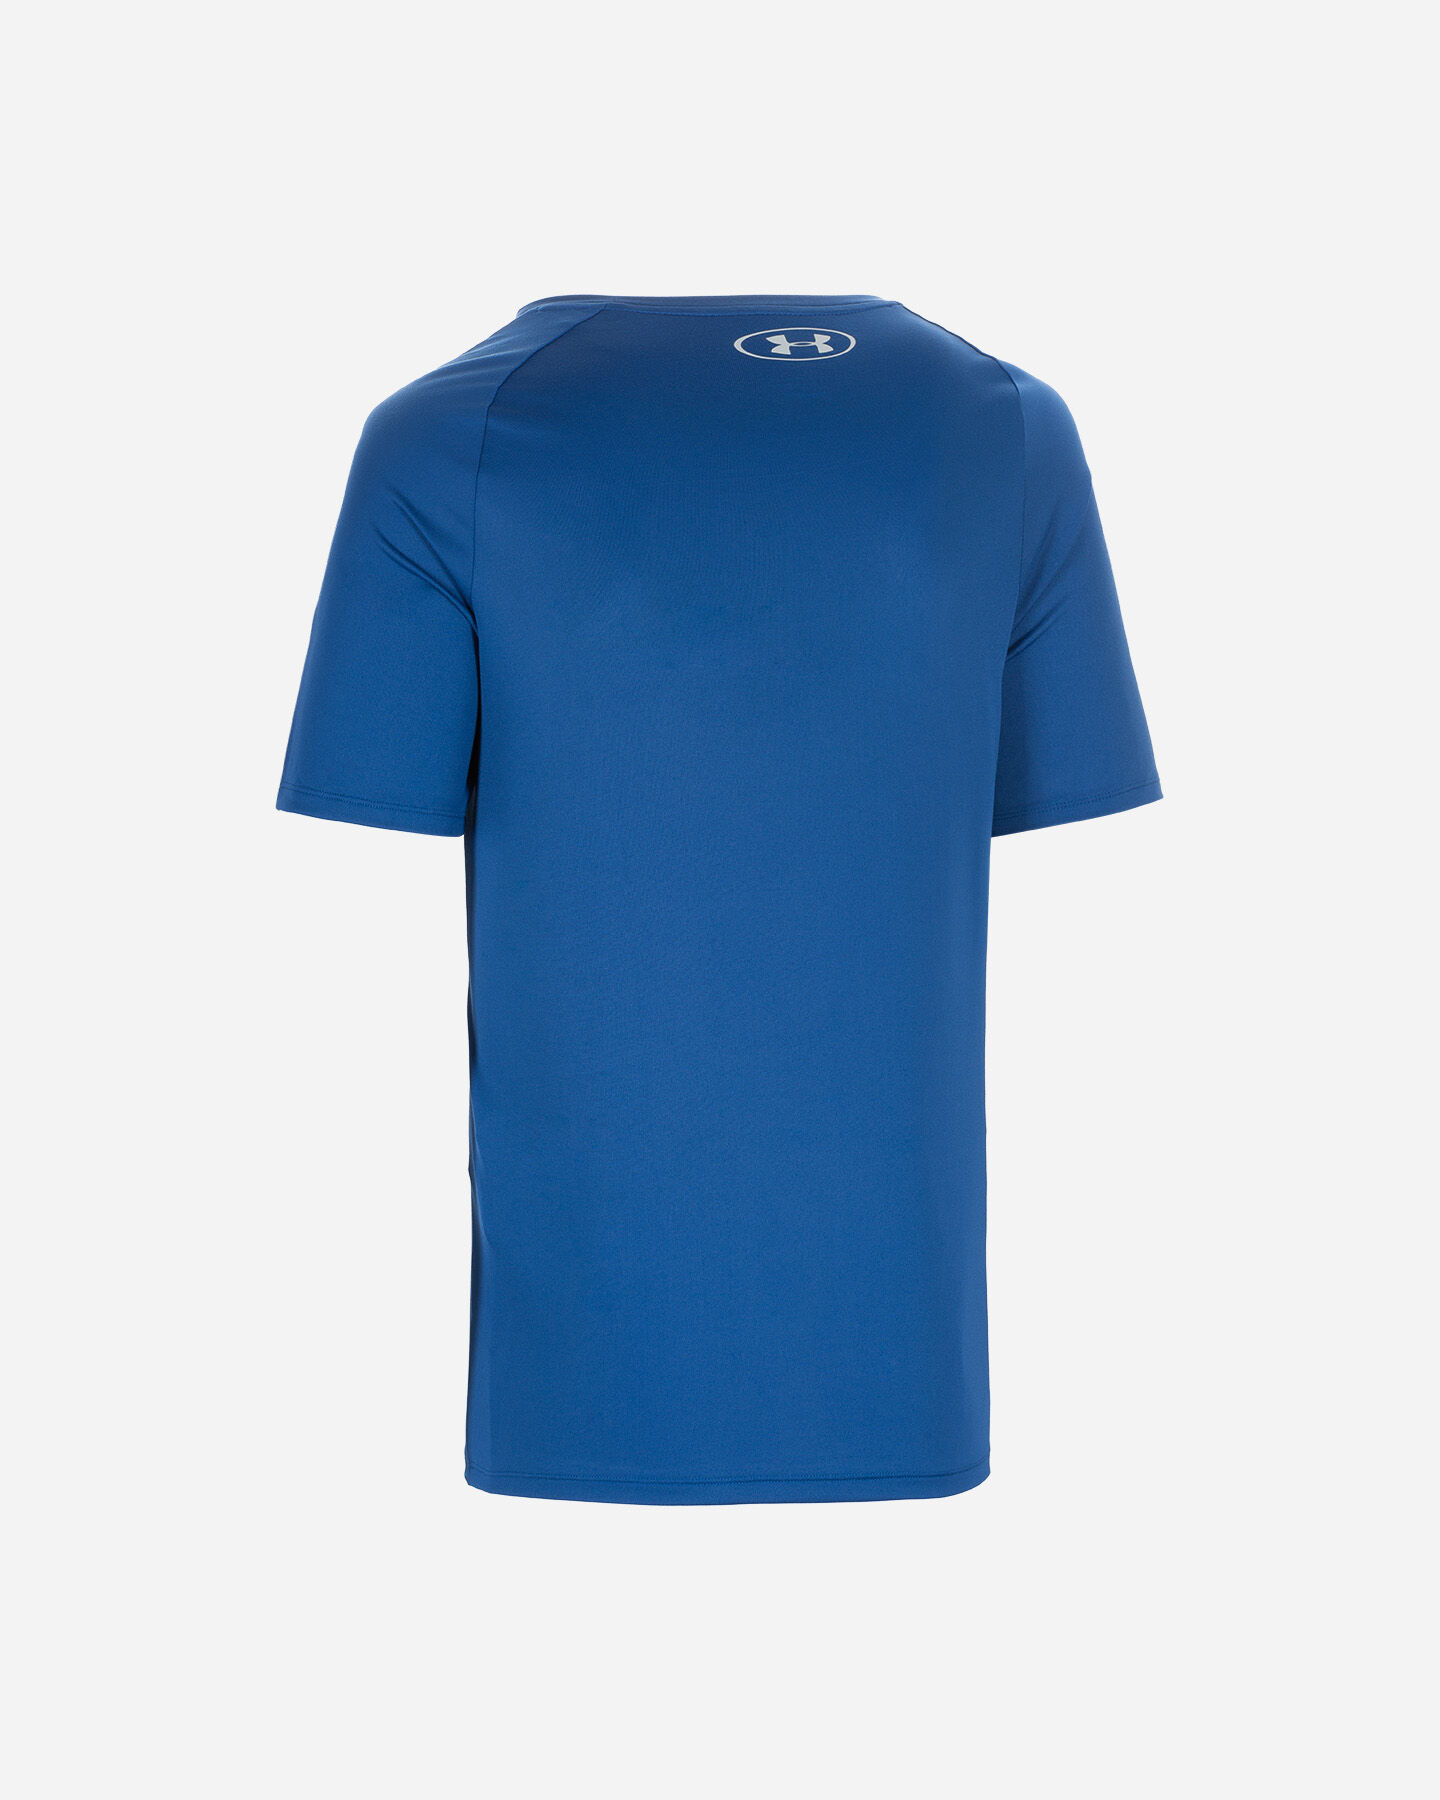 T-Shirt training UNDER ARMOUR TECH 2.0 VIBE M S5169406 scatto 1